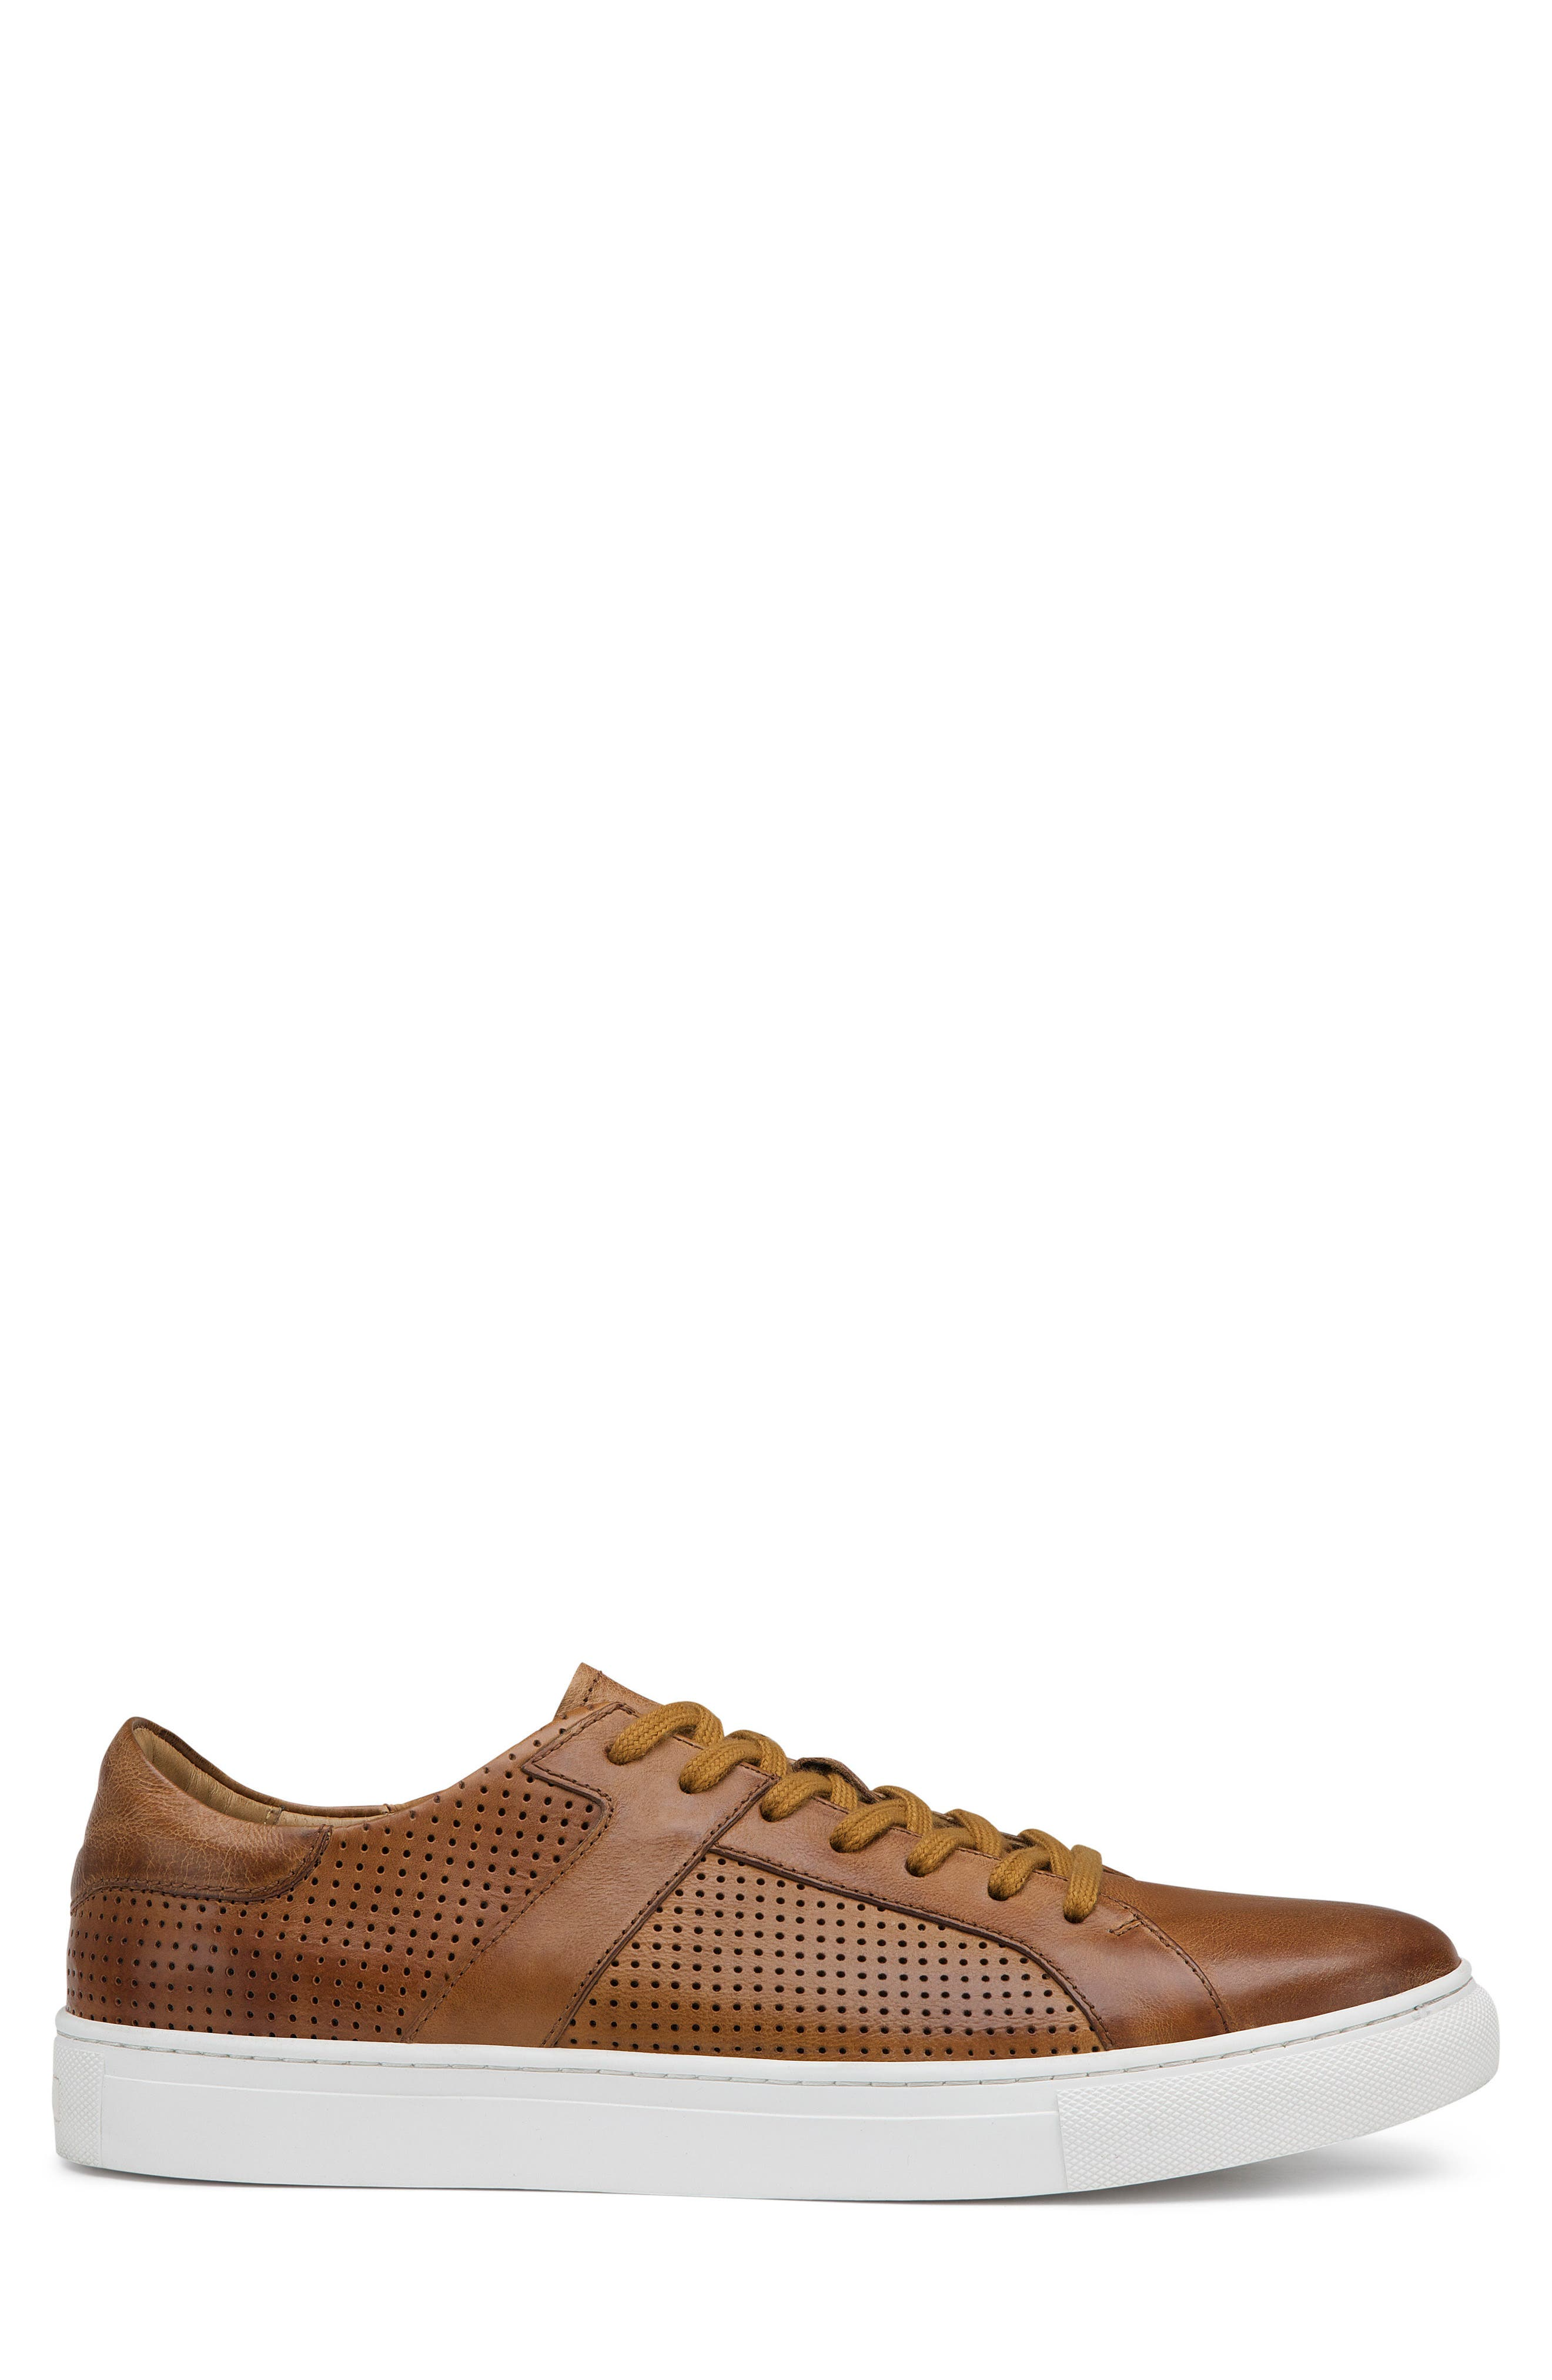 Aaron Sneaker,                             Alternate thumbnail 3, color,                             TAN LEATHER